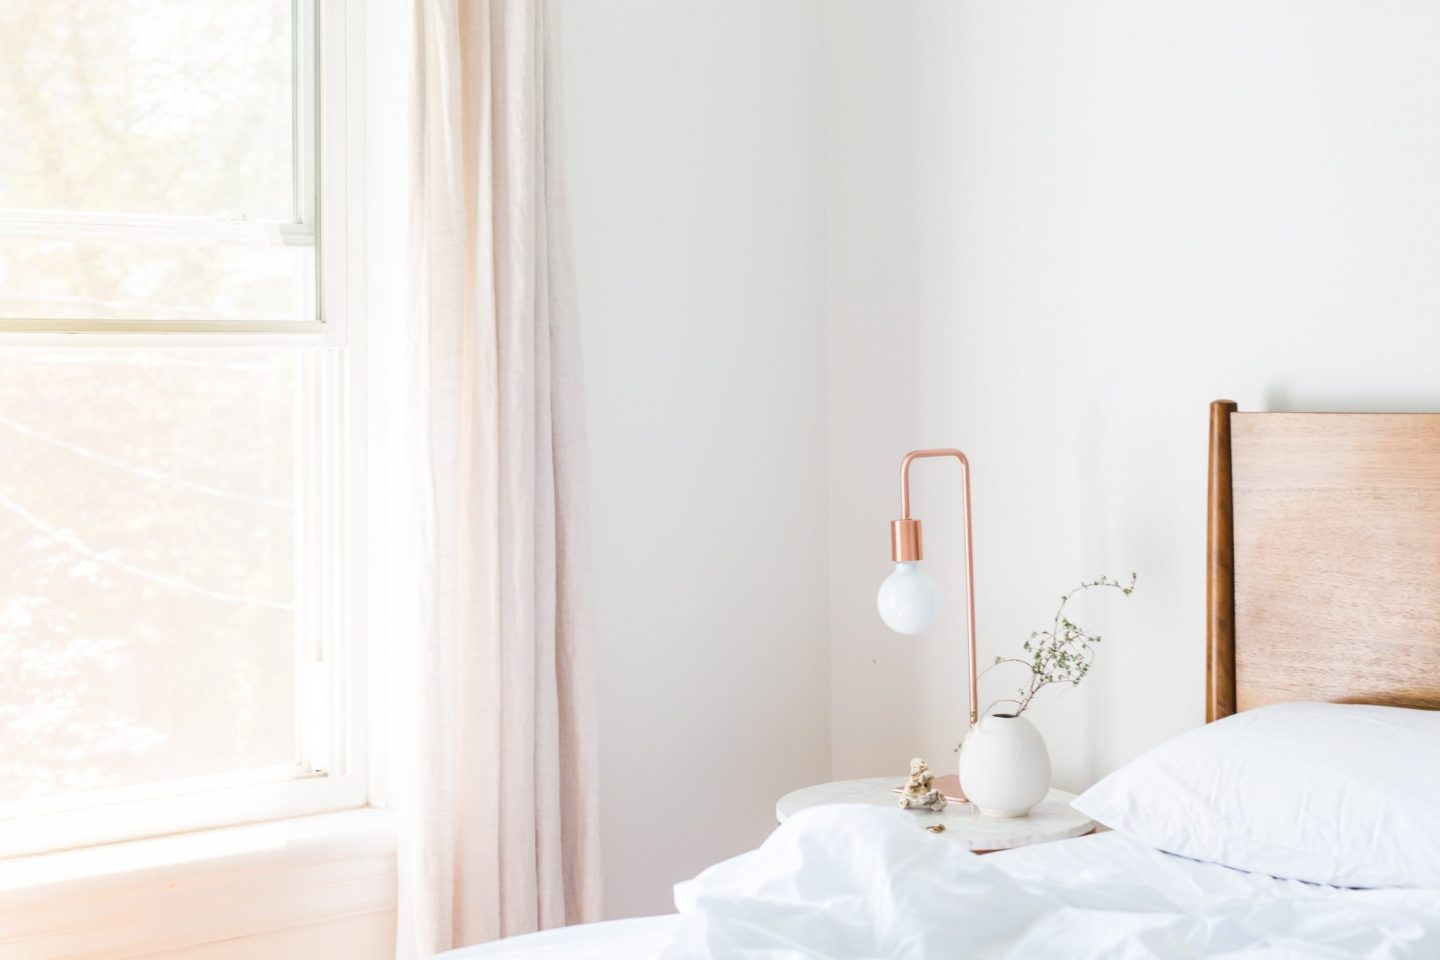 Creating a bright and airy bedroom using curtains